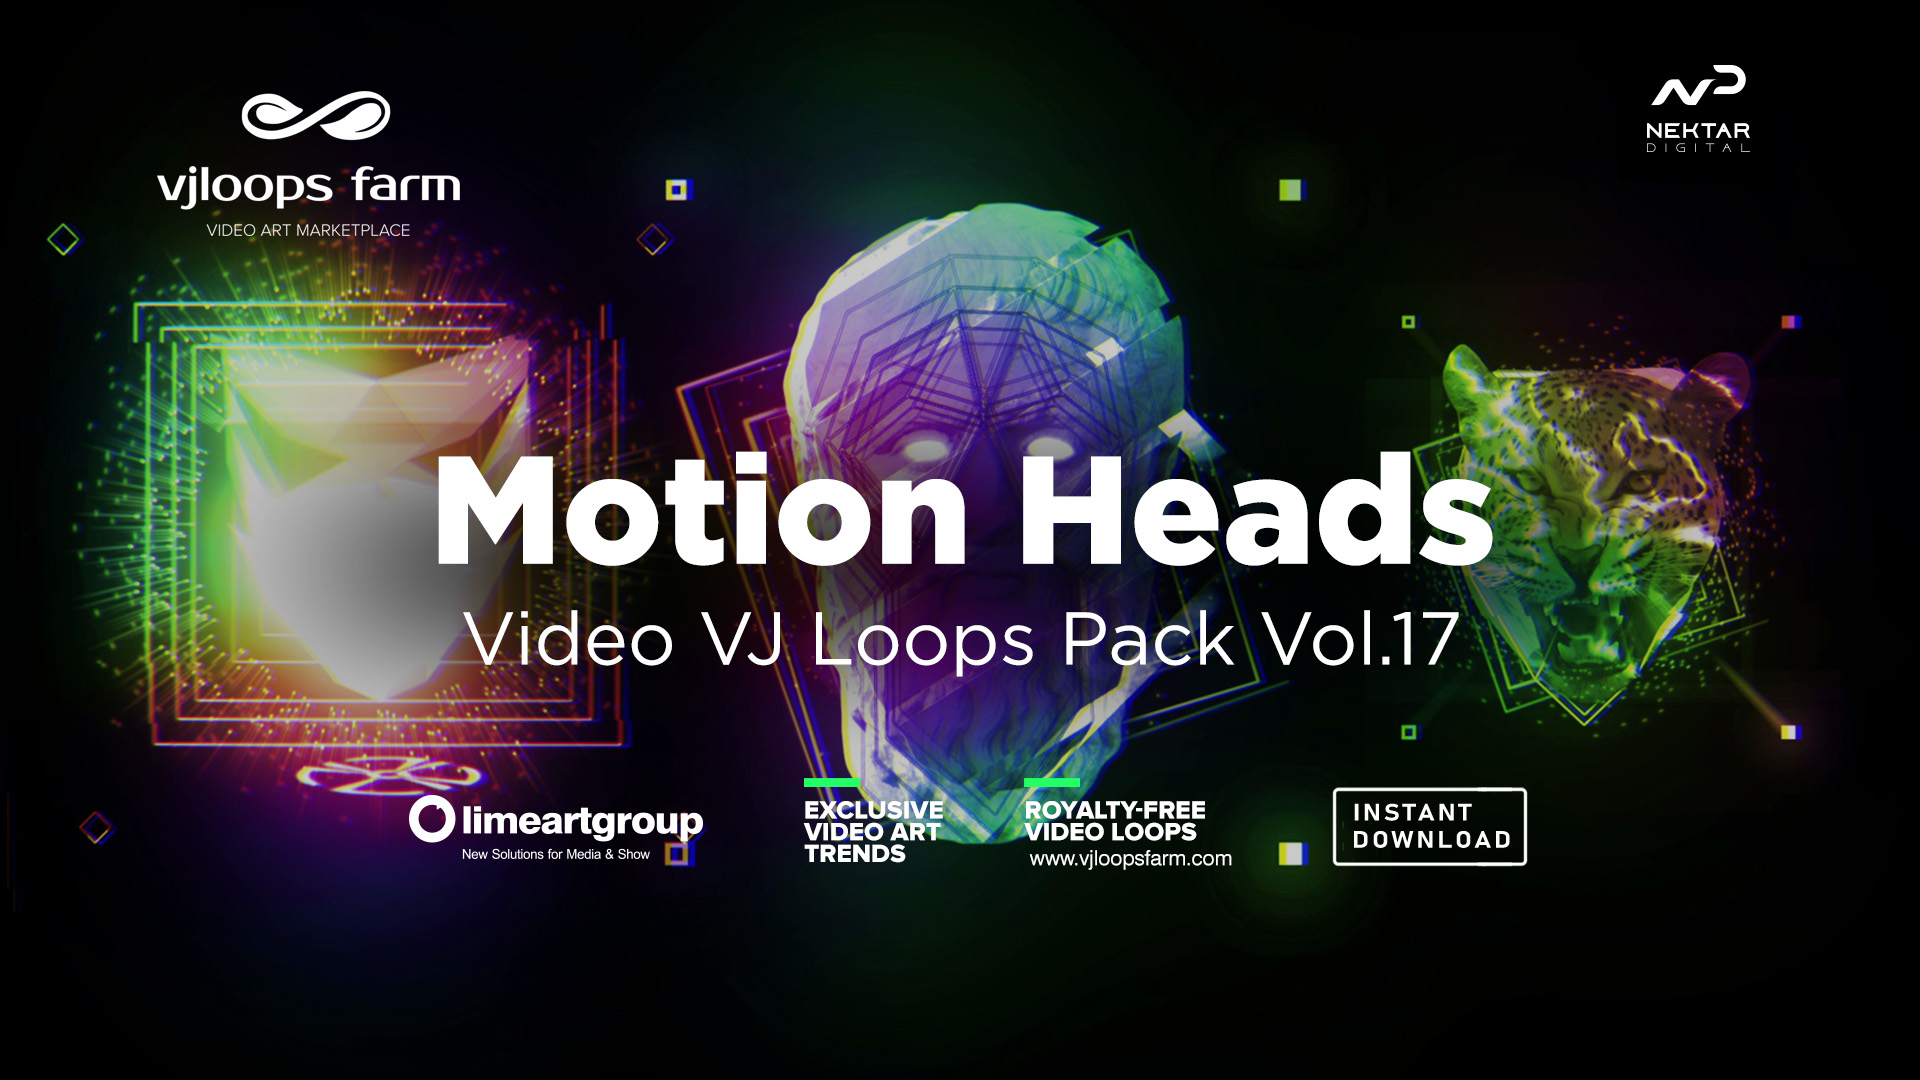 vj loops visuals